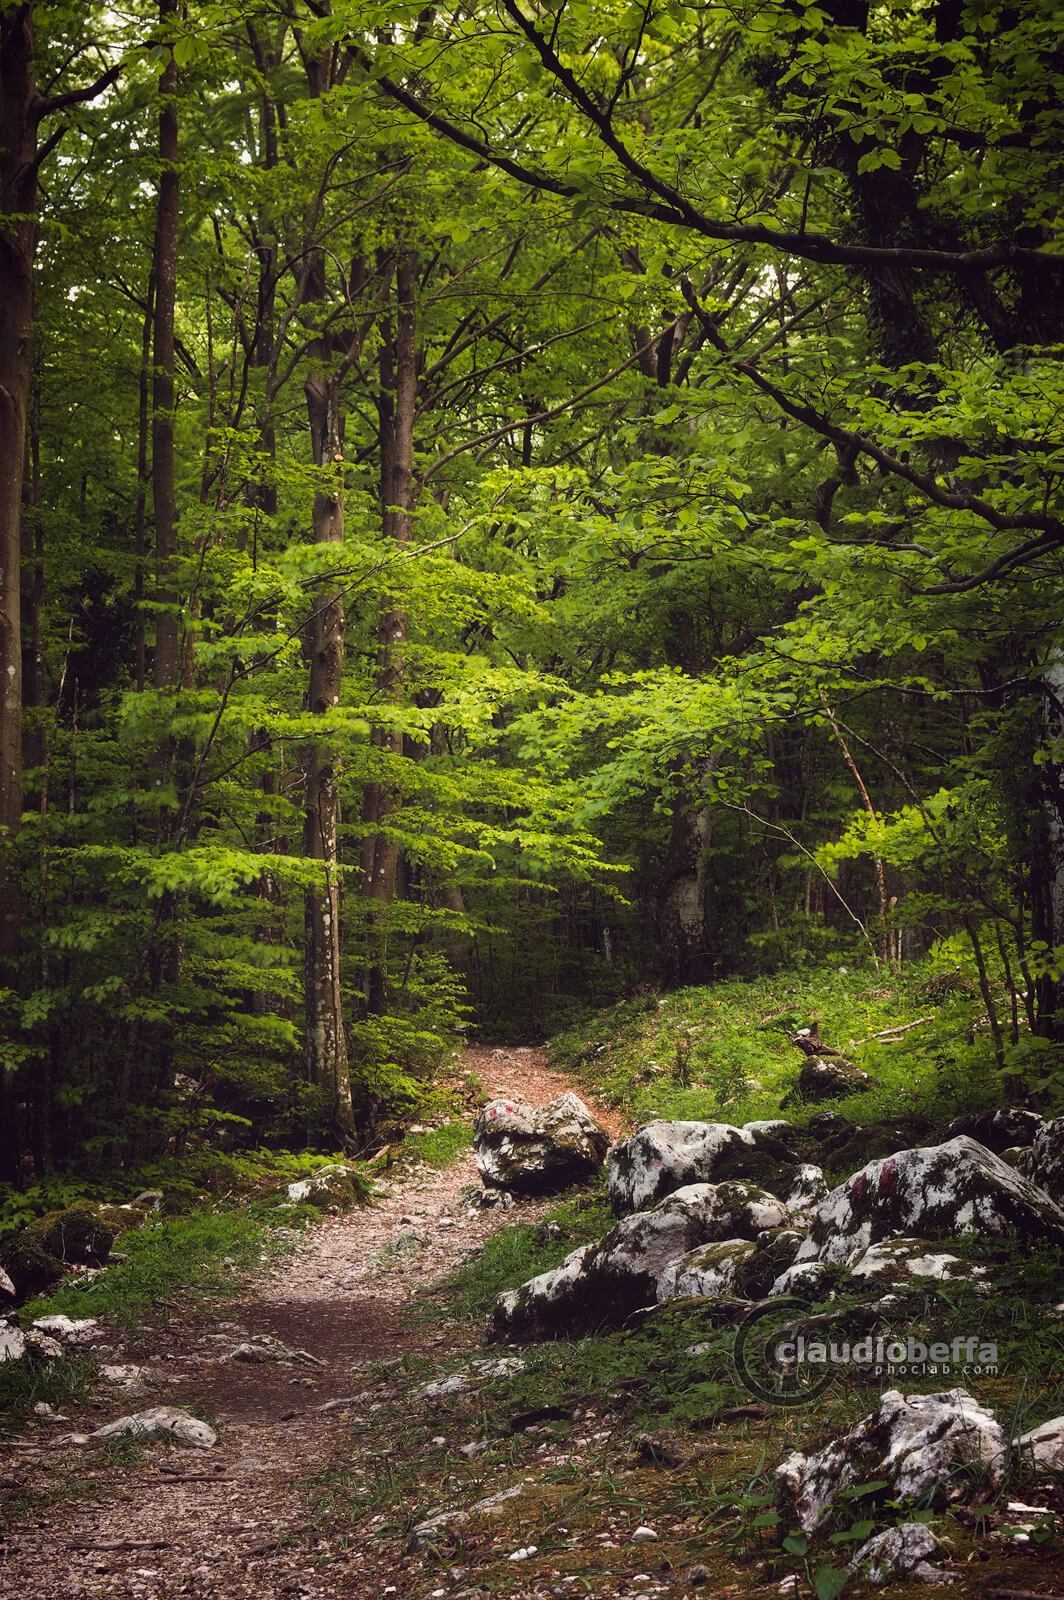 Path, Forest, Mount Cucco, Umbria, Italy, Nature, Trees, Deep into the forest